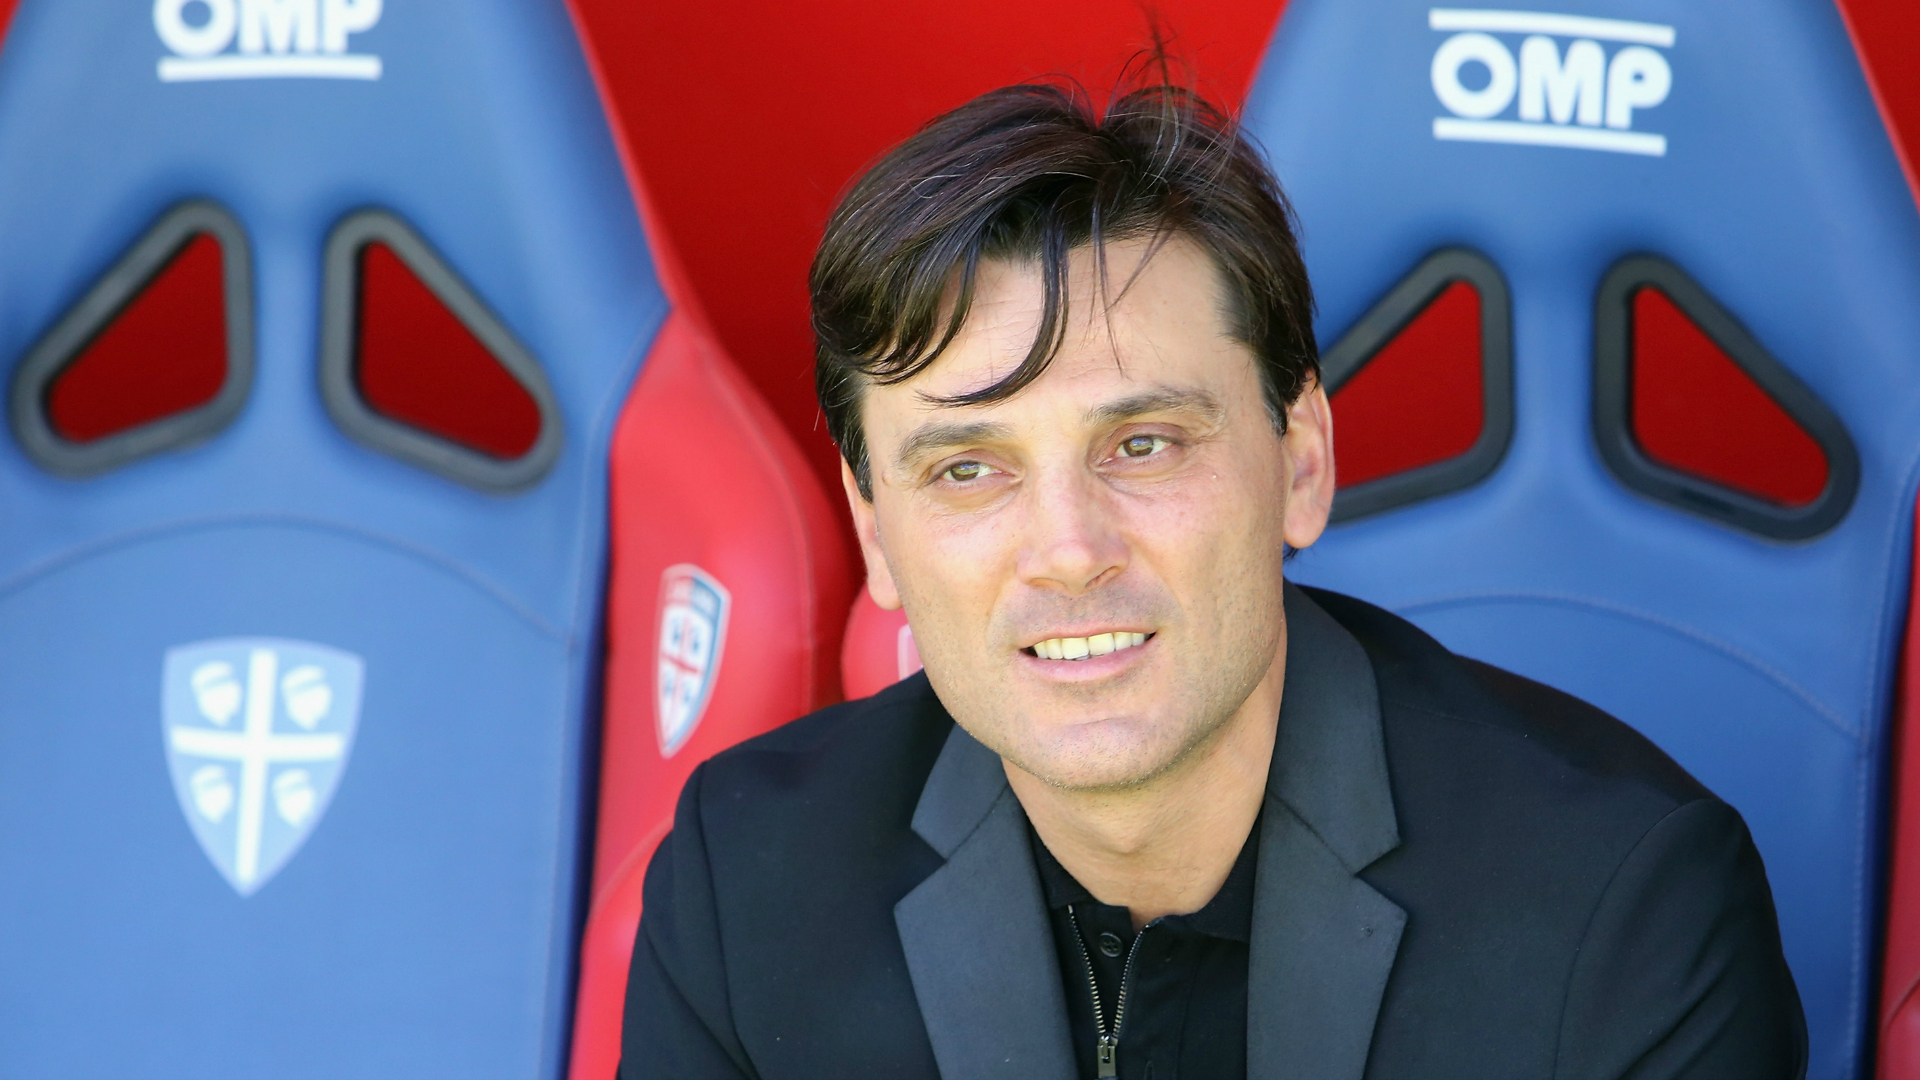 Montella extends contract as AC Milan prepares market moves